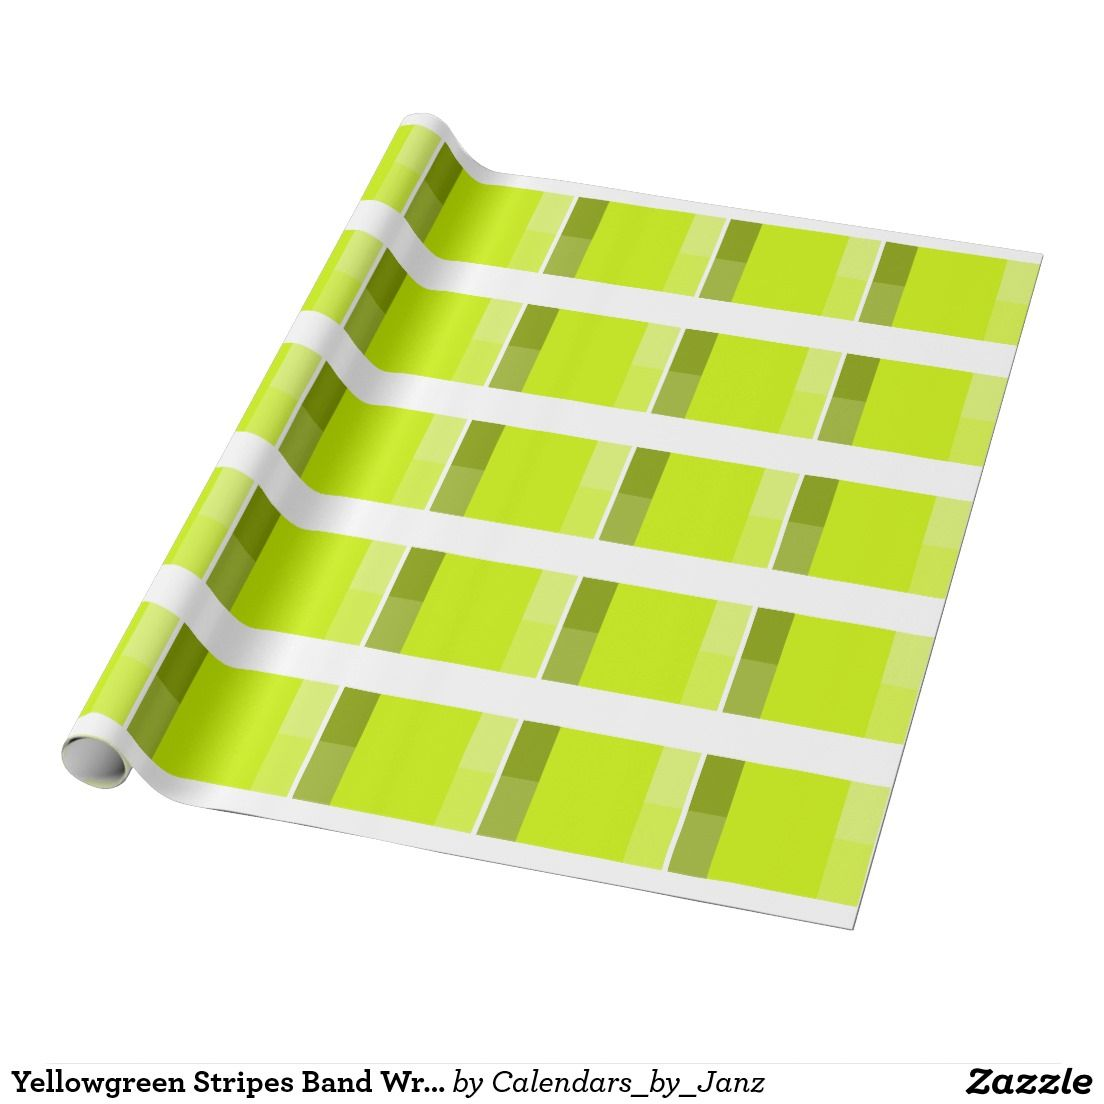 Yellowgreen Stripes Band Wrapping Paper by Janz